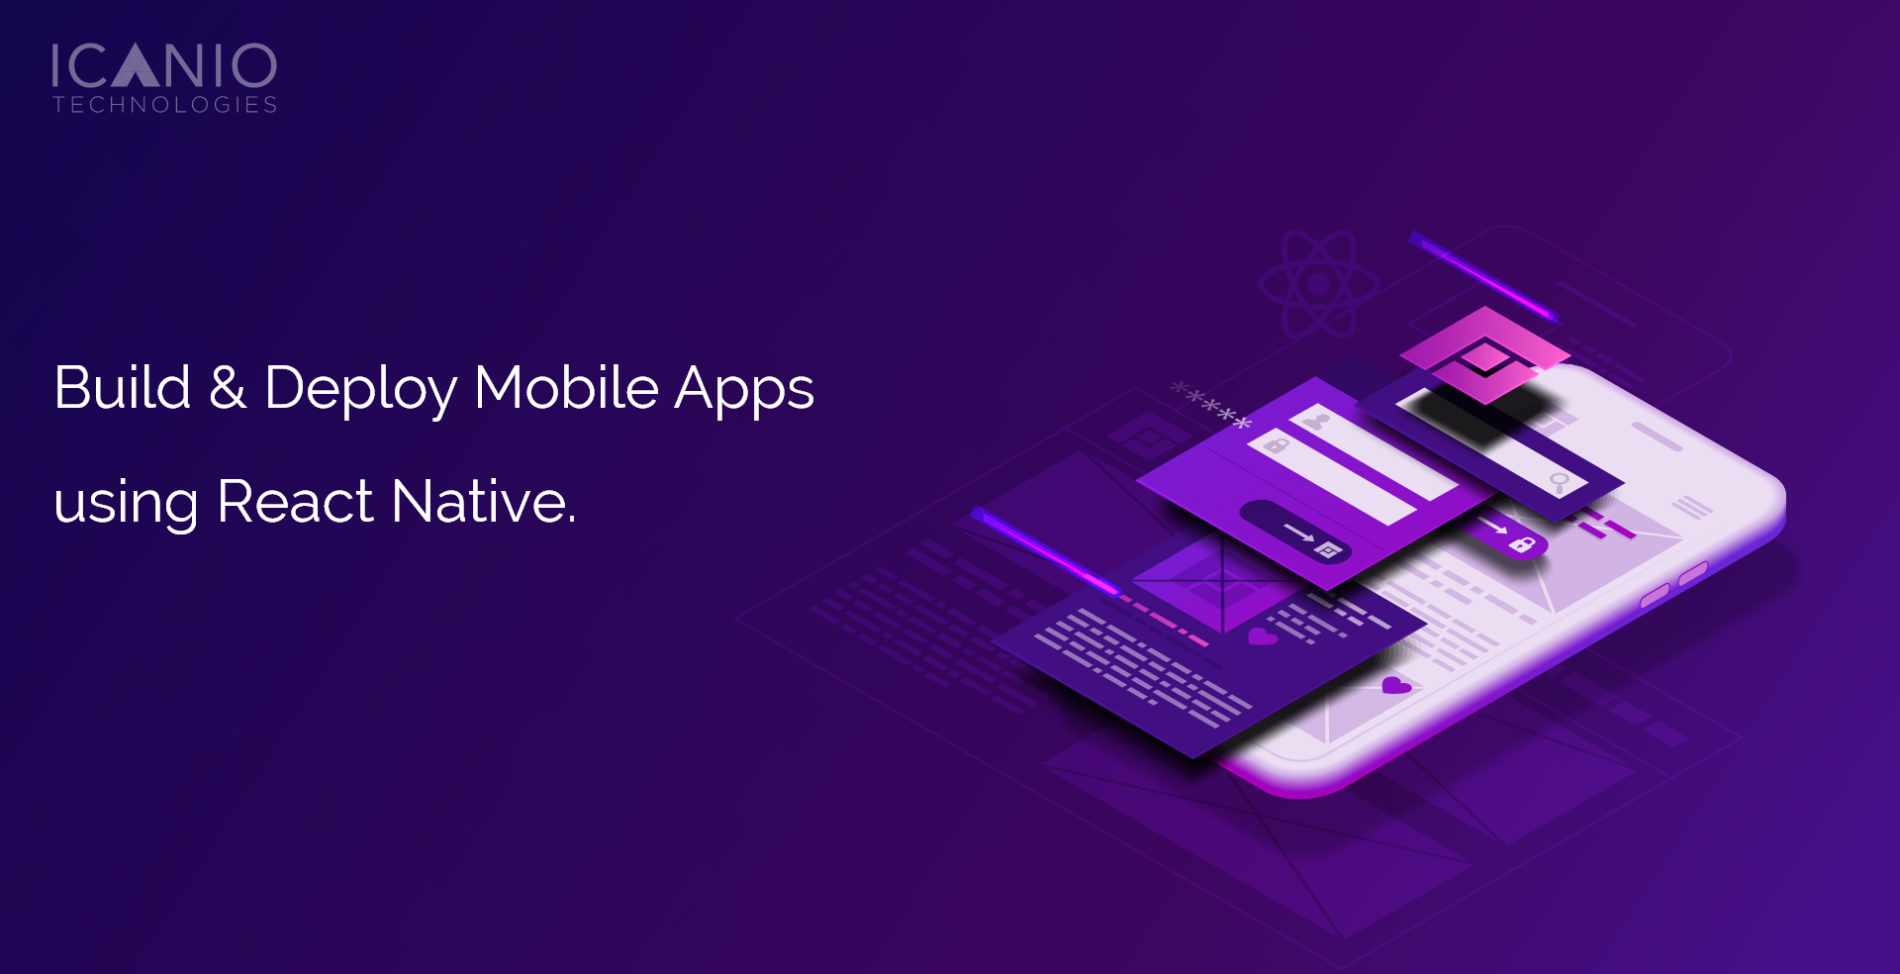 Build and Deploy Mobile Apps Fast With React Native